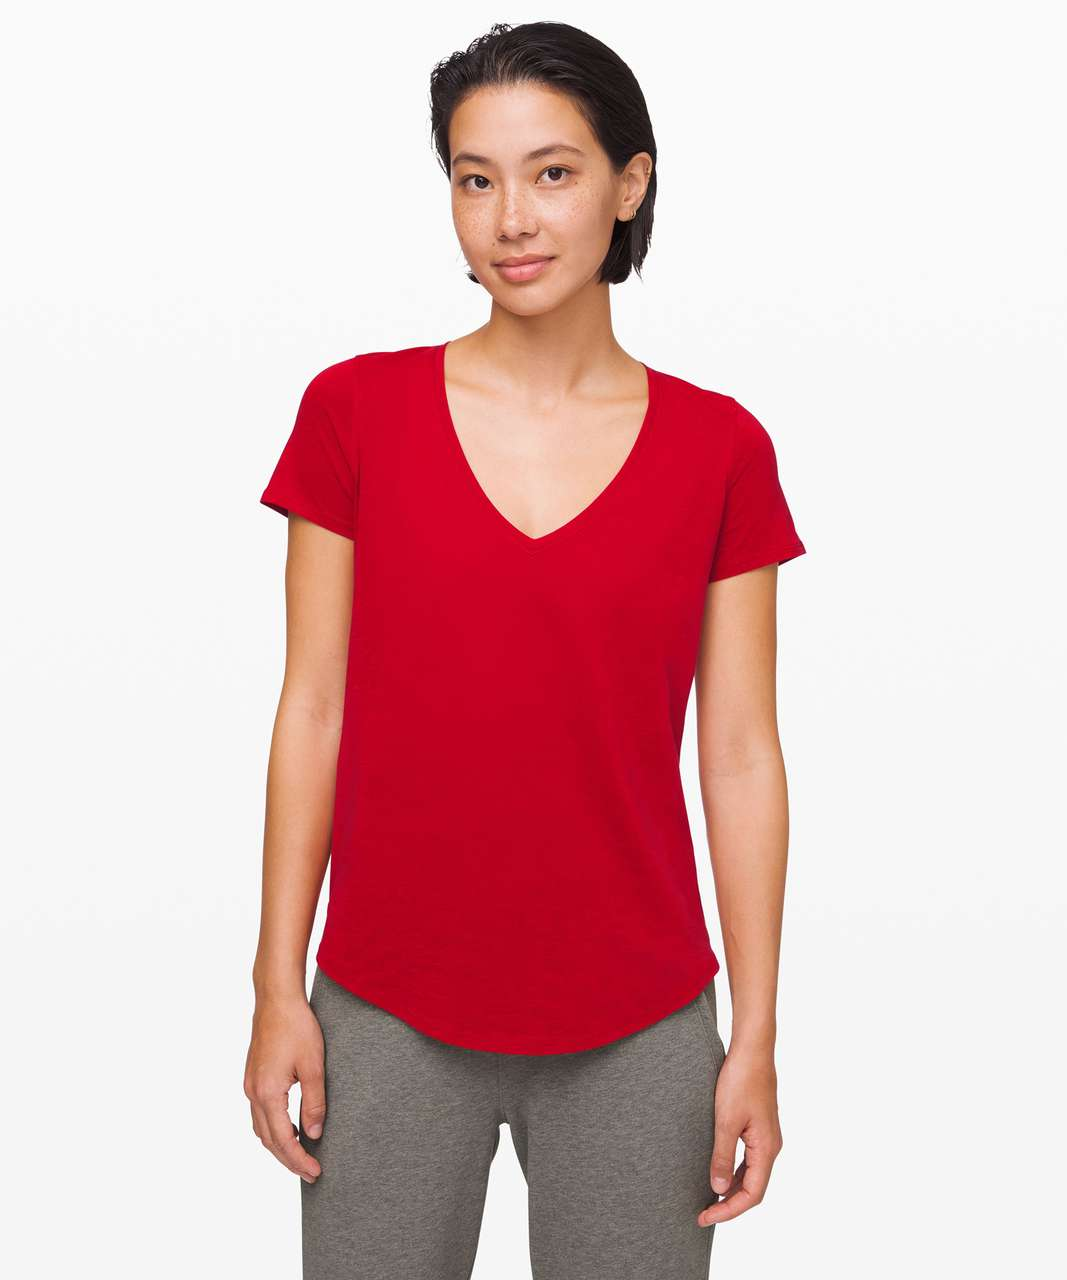 Lululemon Love Tee V - Dark Red